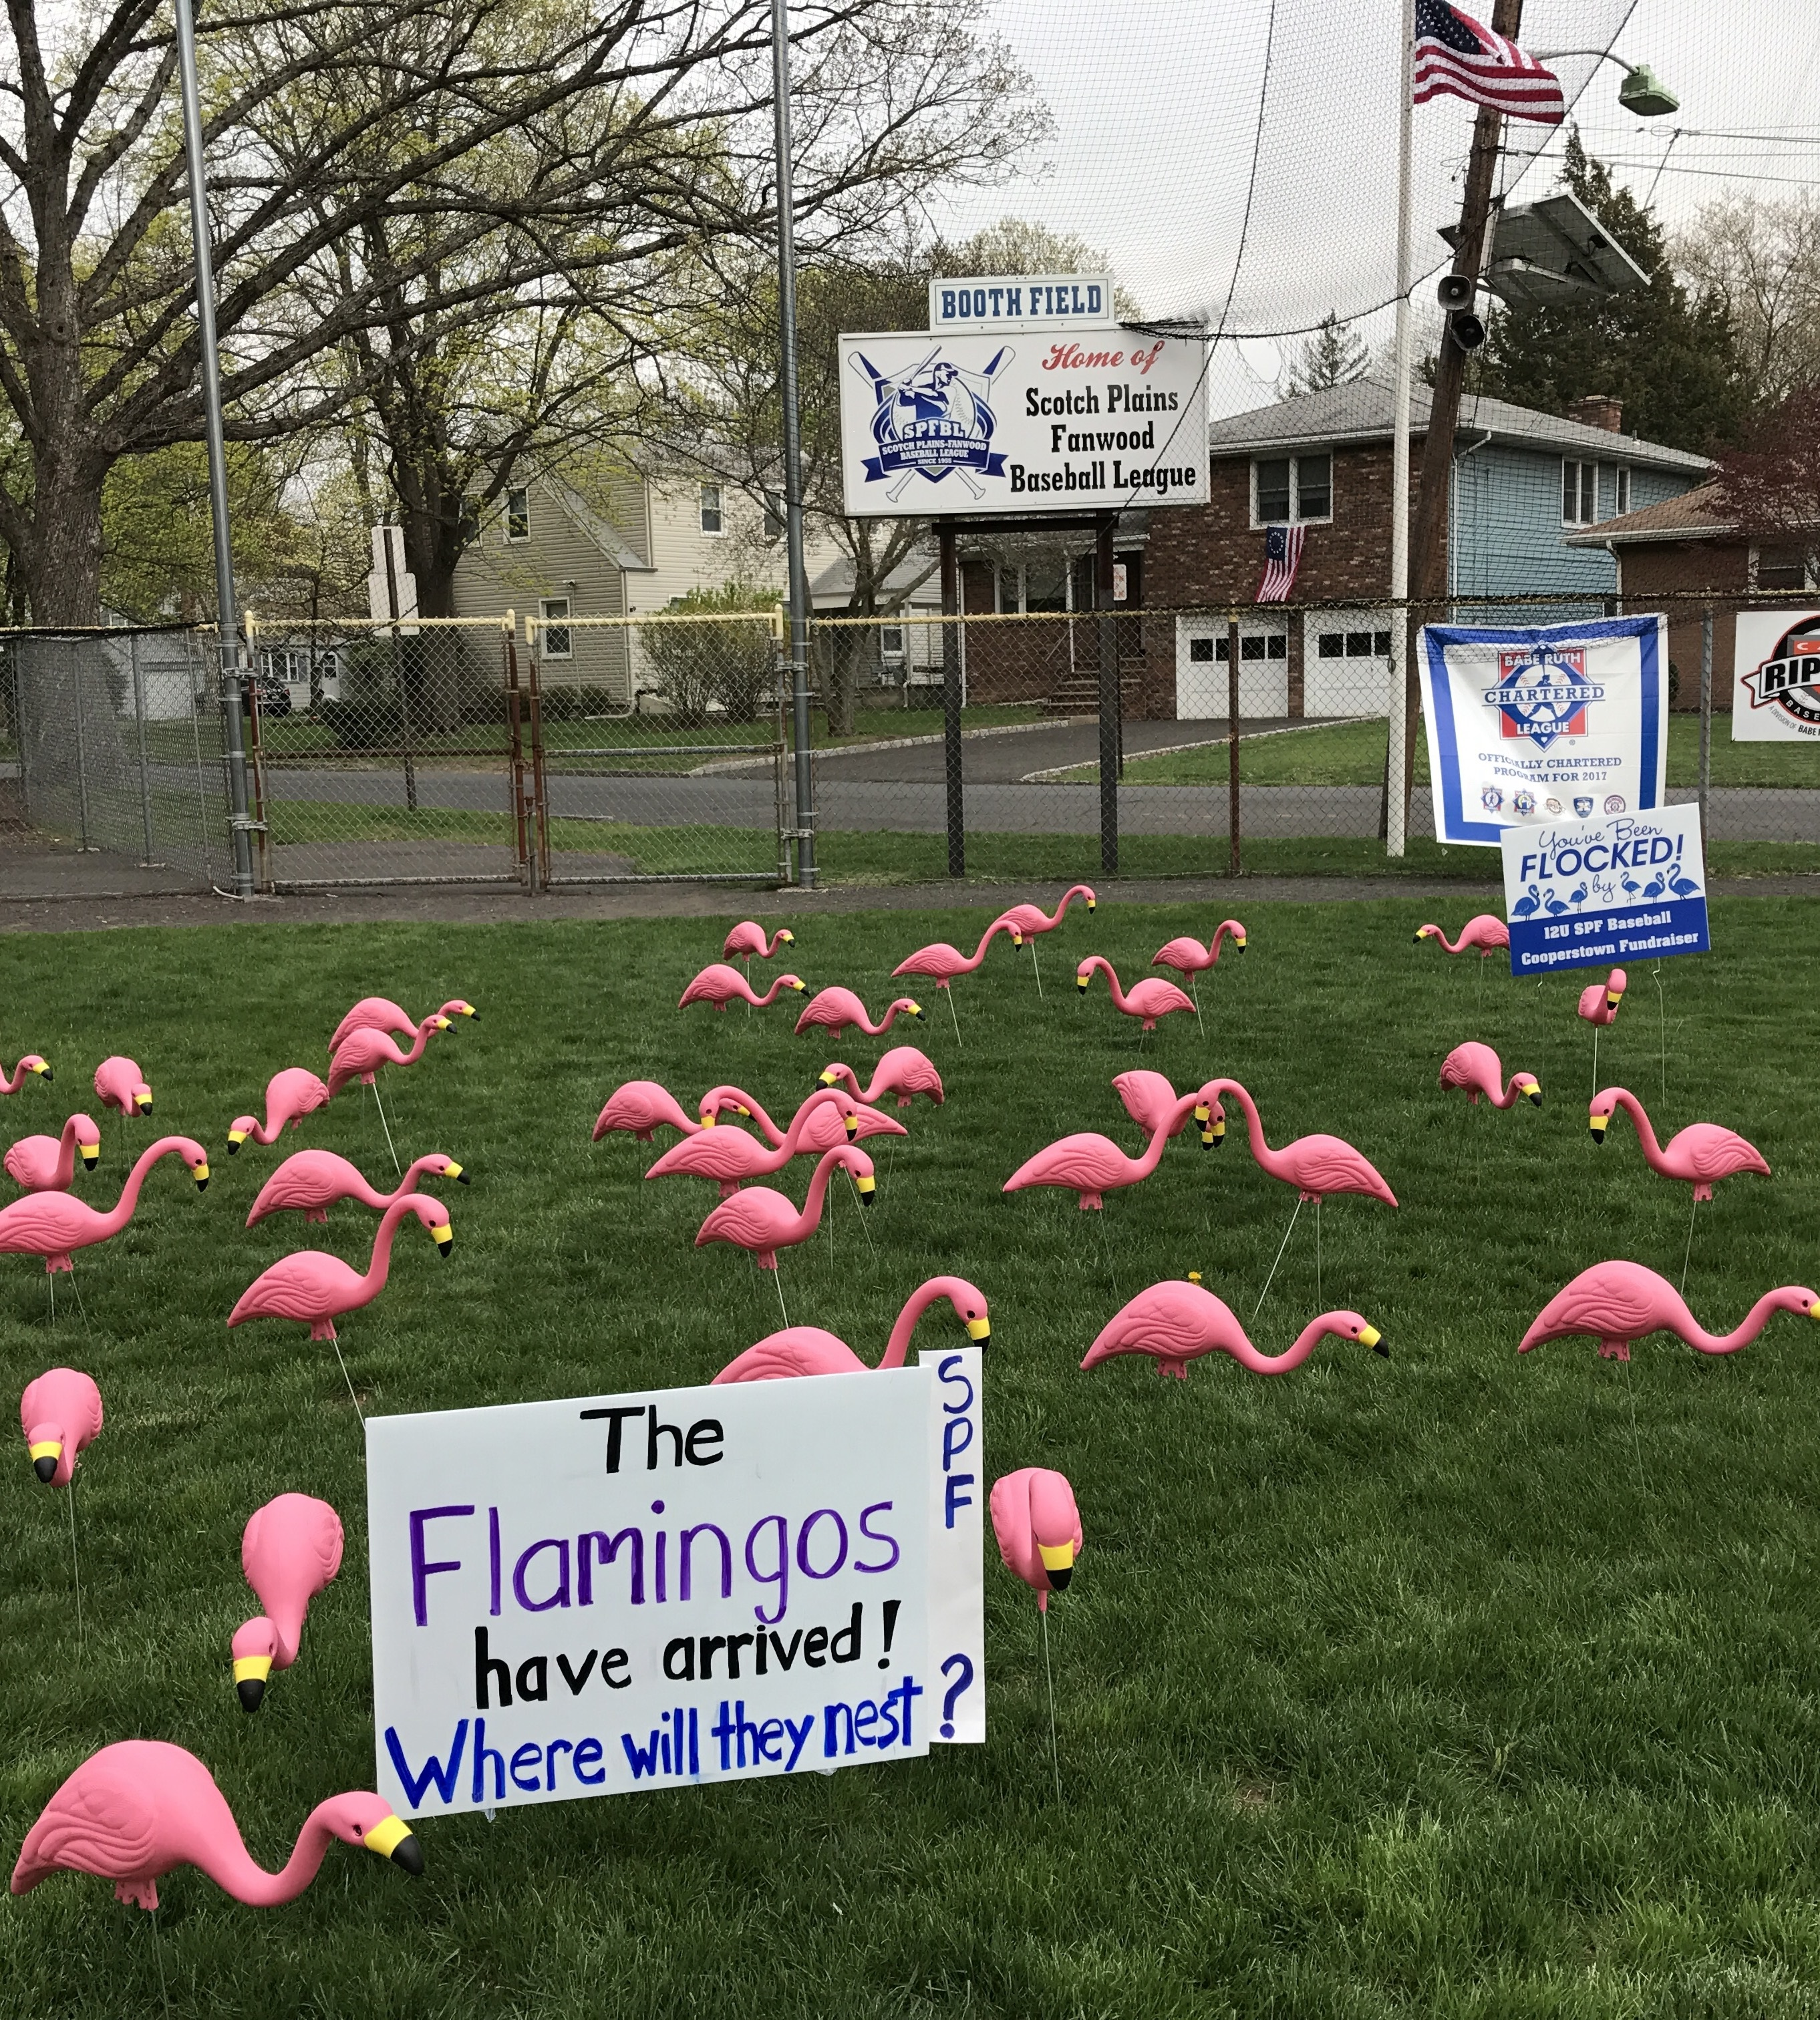 Flamingos are back!